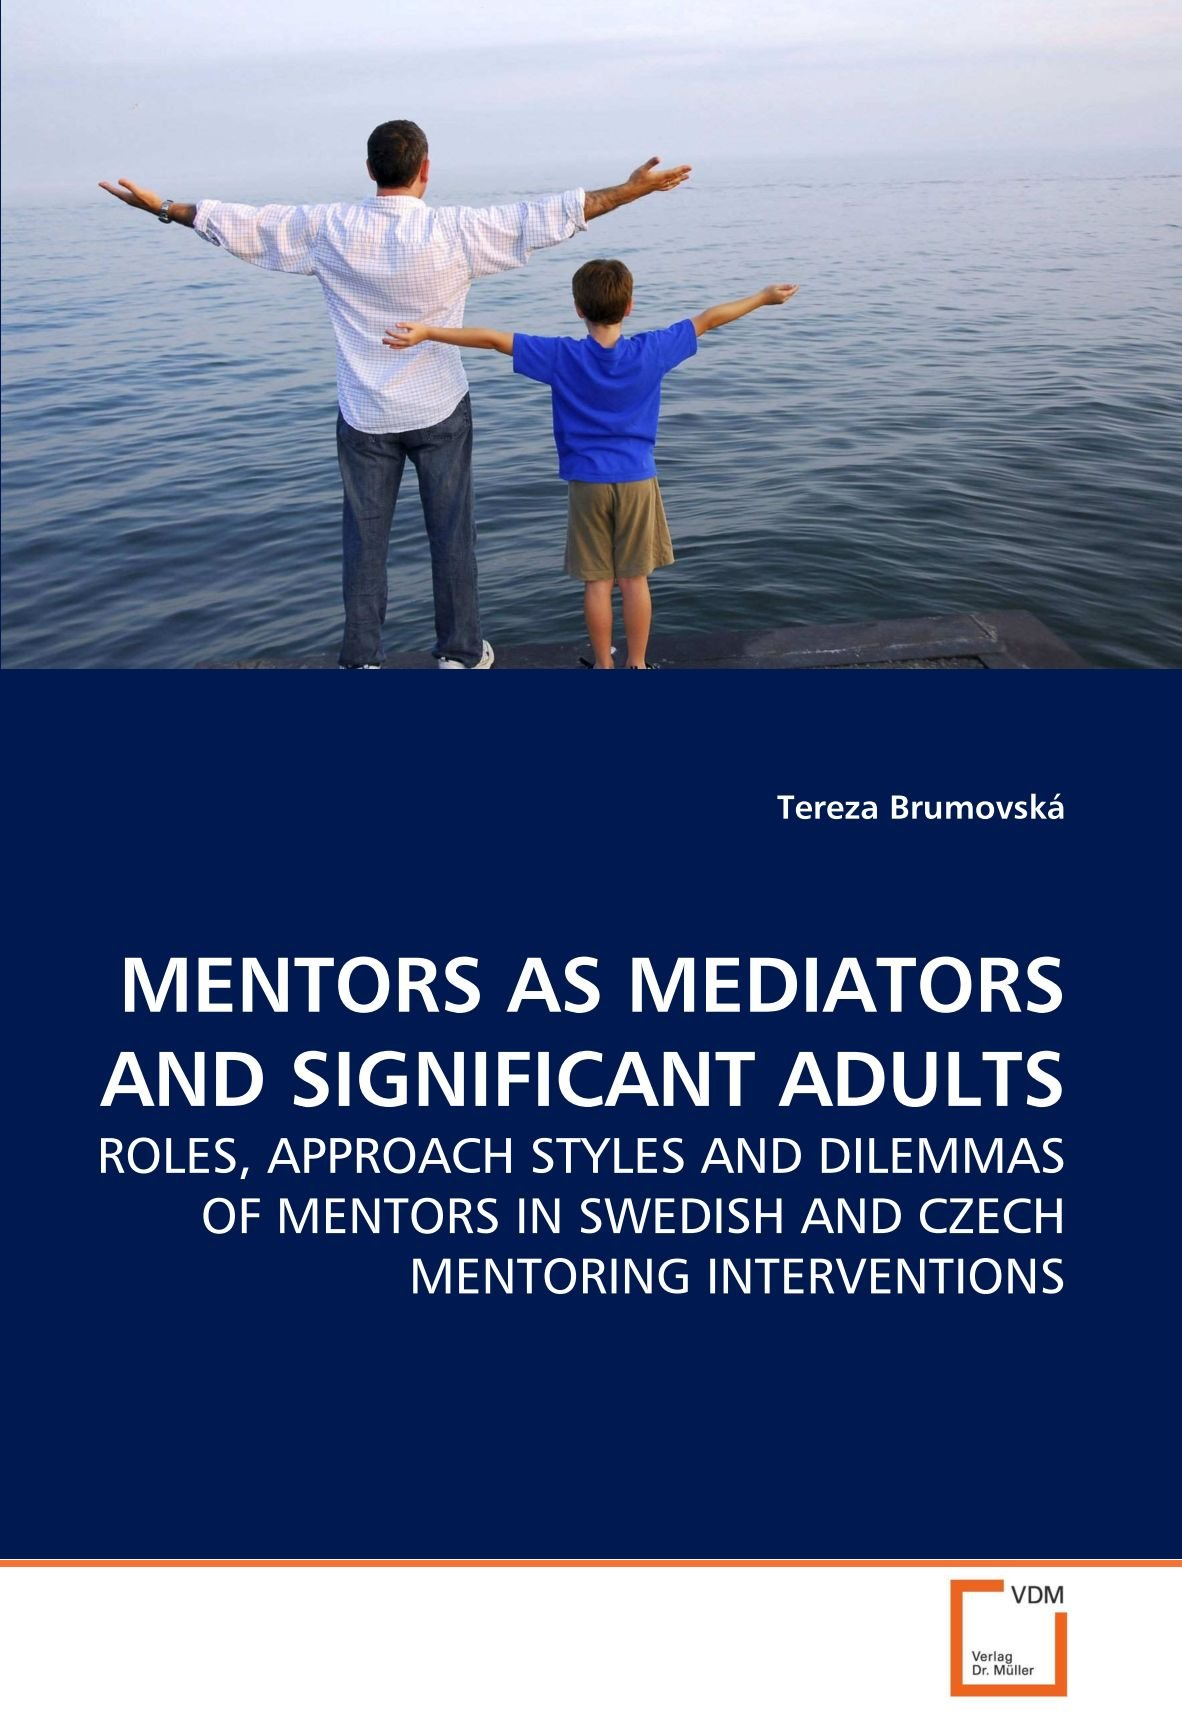 Download MENTORS AS MEDIATORS AND SIGNIFICANT ADULTS: ROLES, APPROACH STYLES AND DILEMMAS OF MENTORS IN SWEDISH AND CZECH MENTORING INTERVENTIONS pdf epub